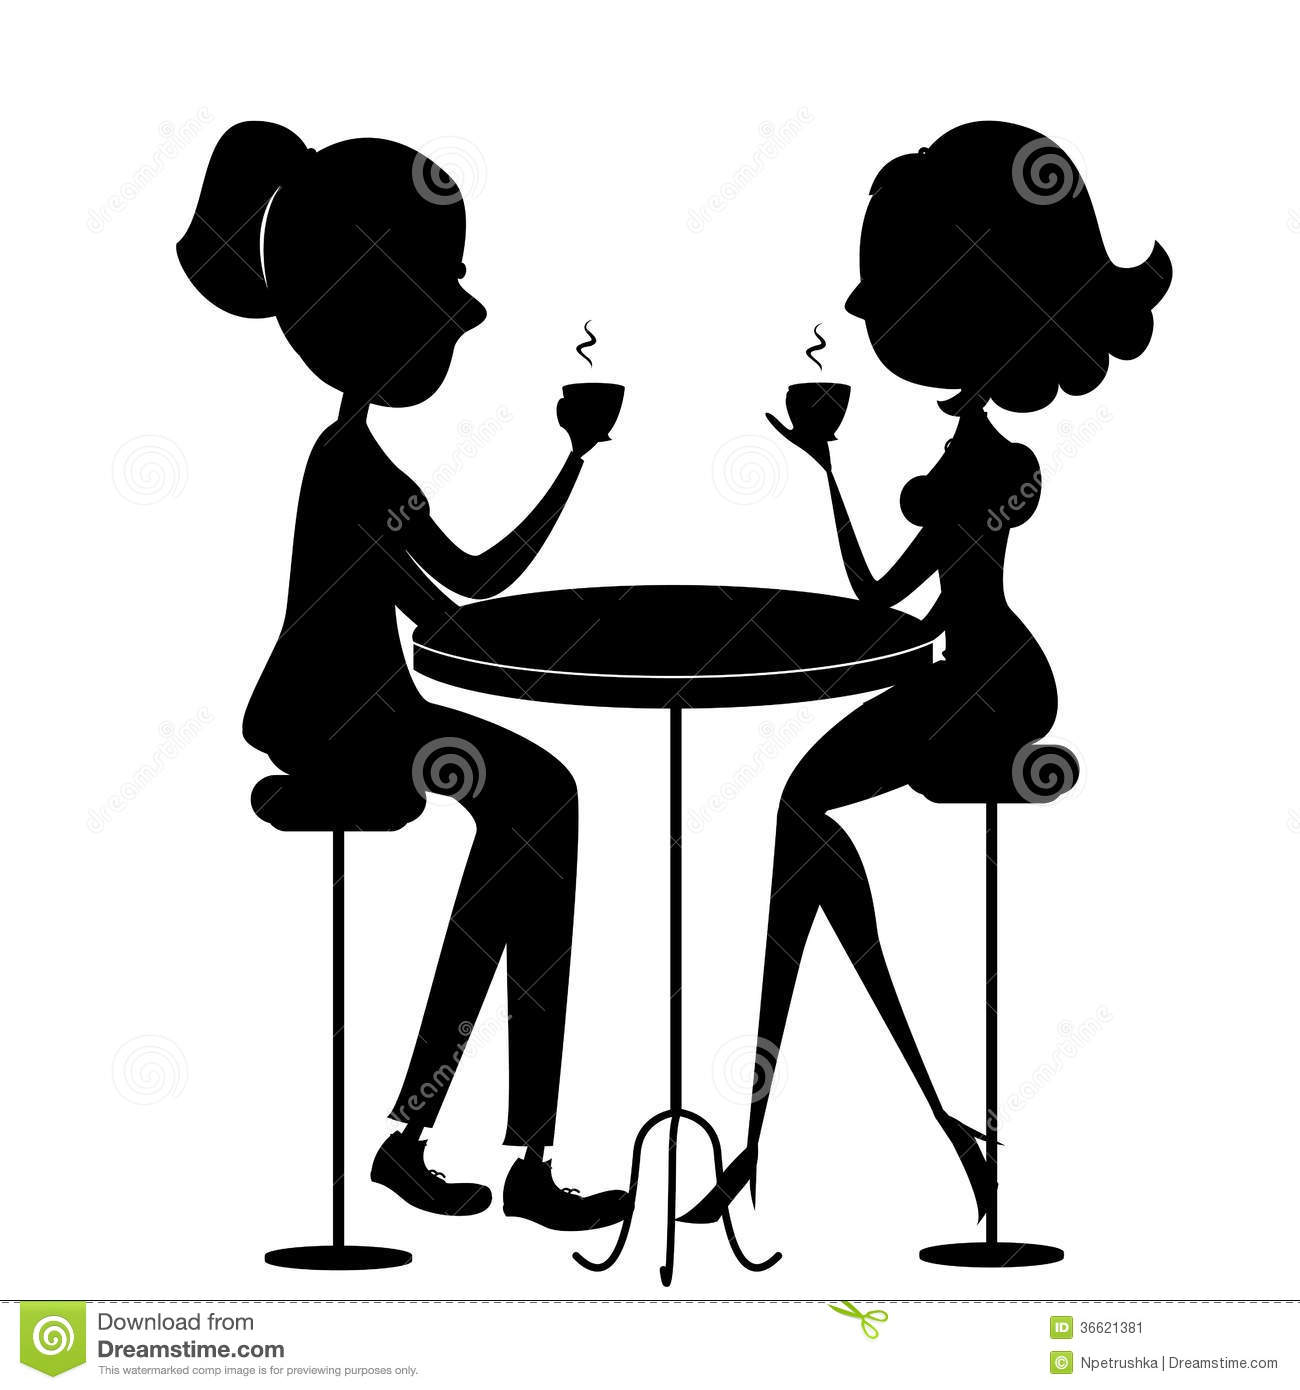 el mirage black girls personals Terms of service (tos) | sdccom statement of purpose sdc is a private club providing a service for adults who wish to communicate online with other adults, to.